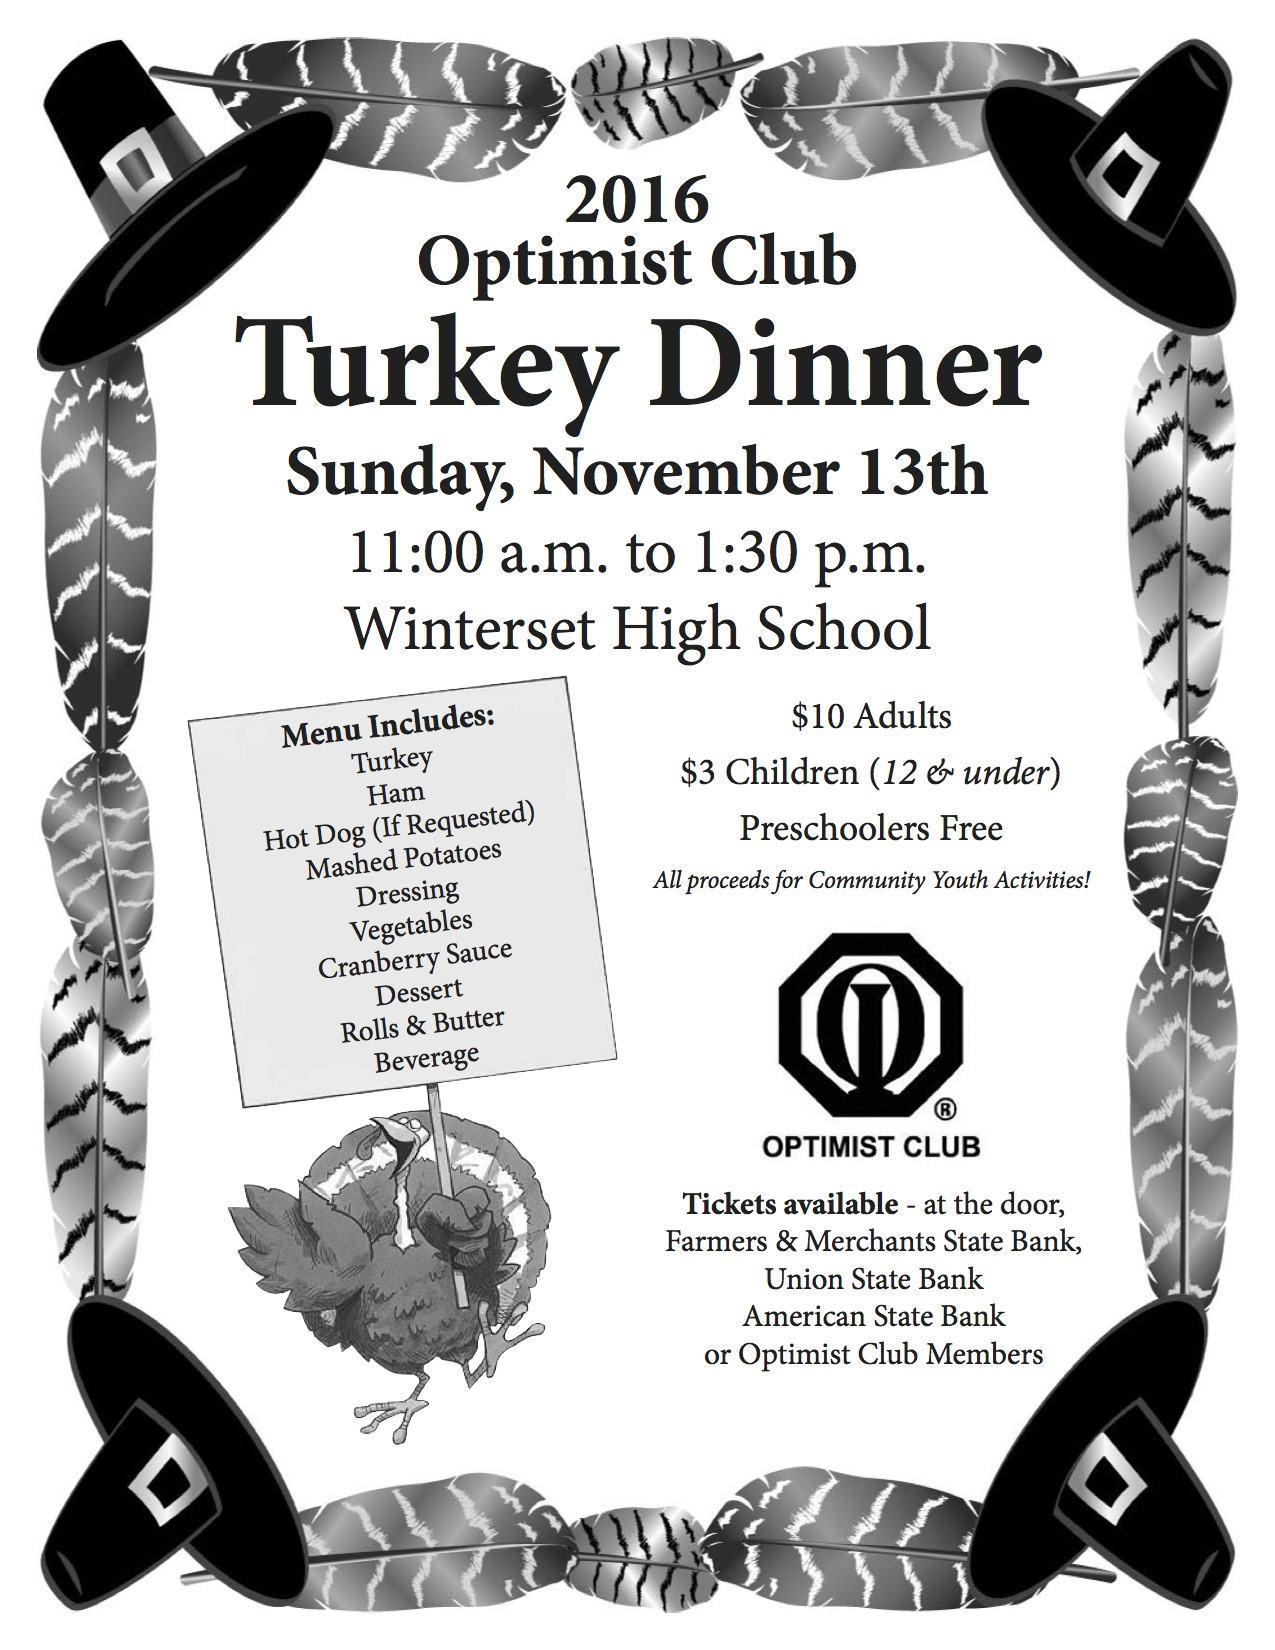 Optimist Club 2016 Turkey Dinner